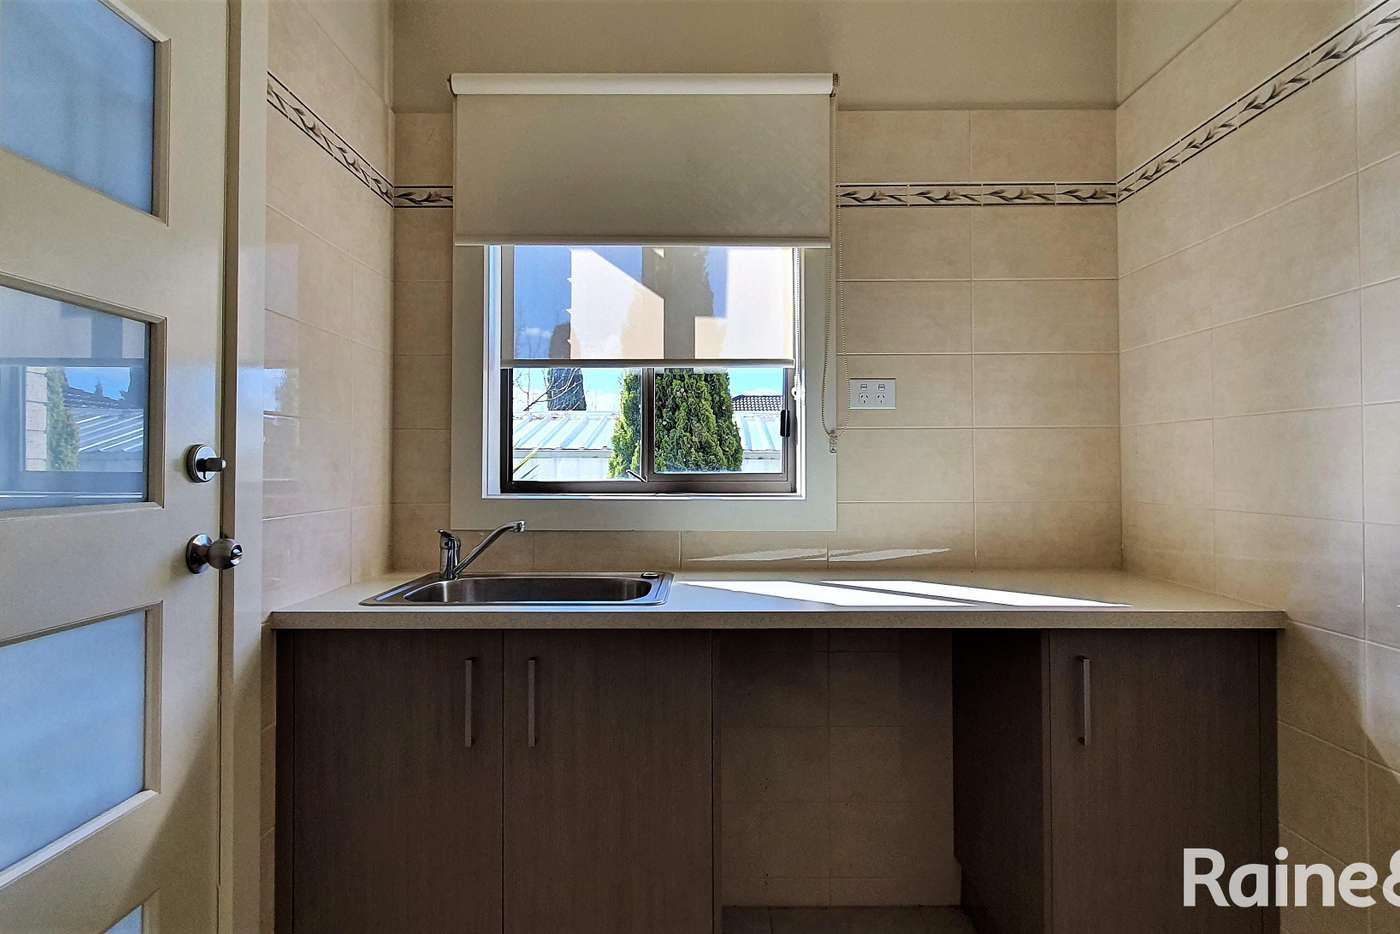 Seventh view of Homely house listing, 2/177 Copernicus Way, Keilor Downs VIC 3038